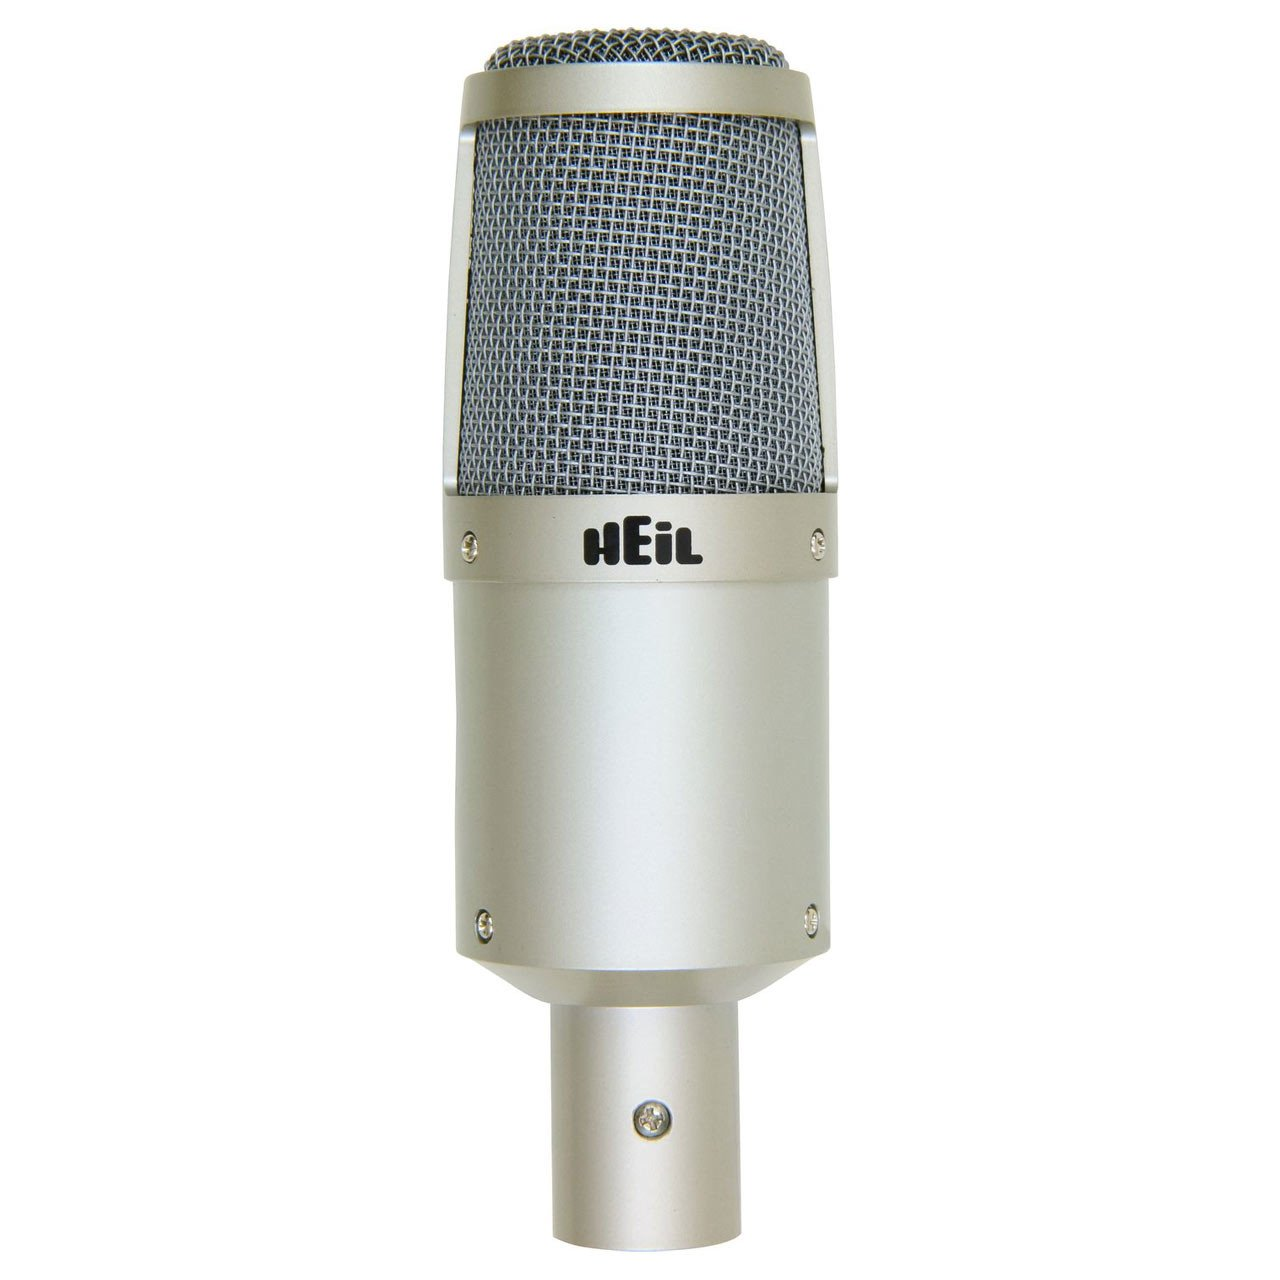 Dynamic Microphones - Heil Sound PR 30 Large Diaphragm Multipurpose Dynamic Microphone